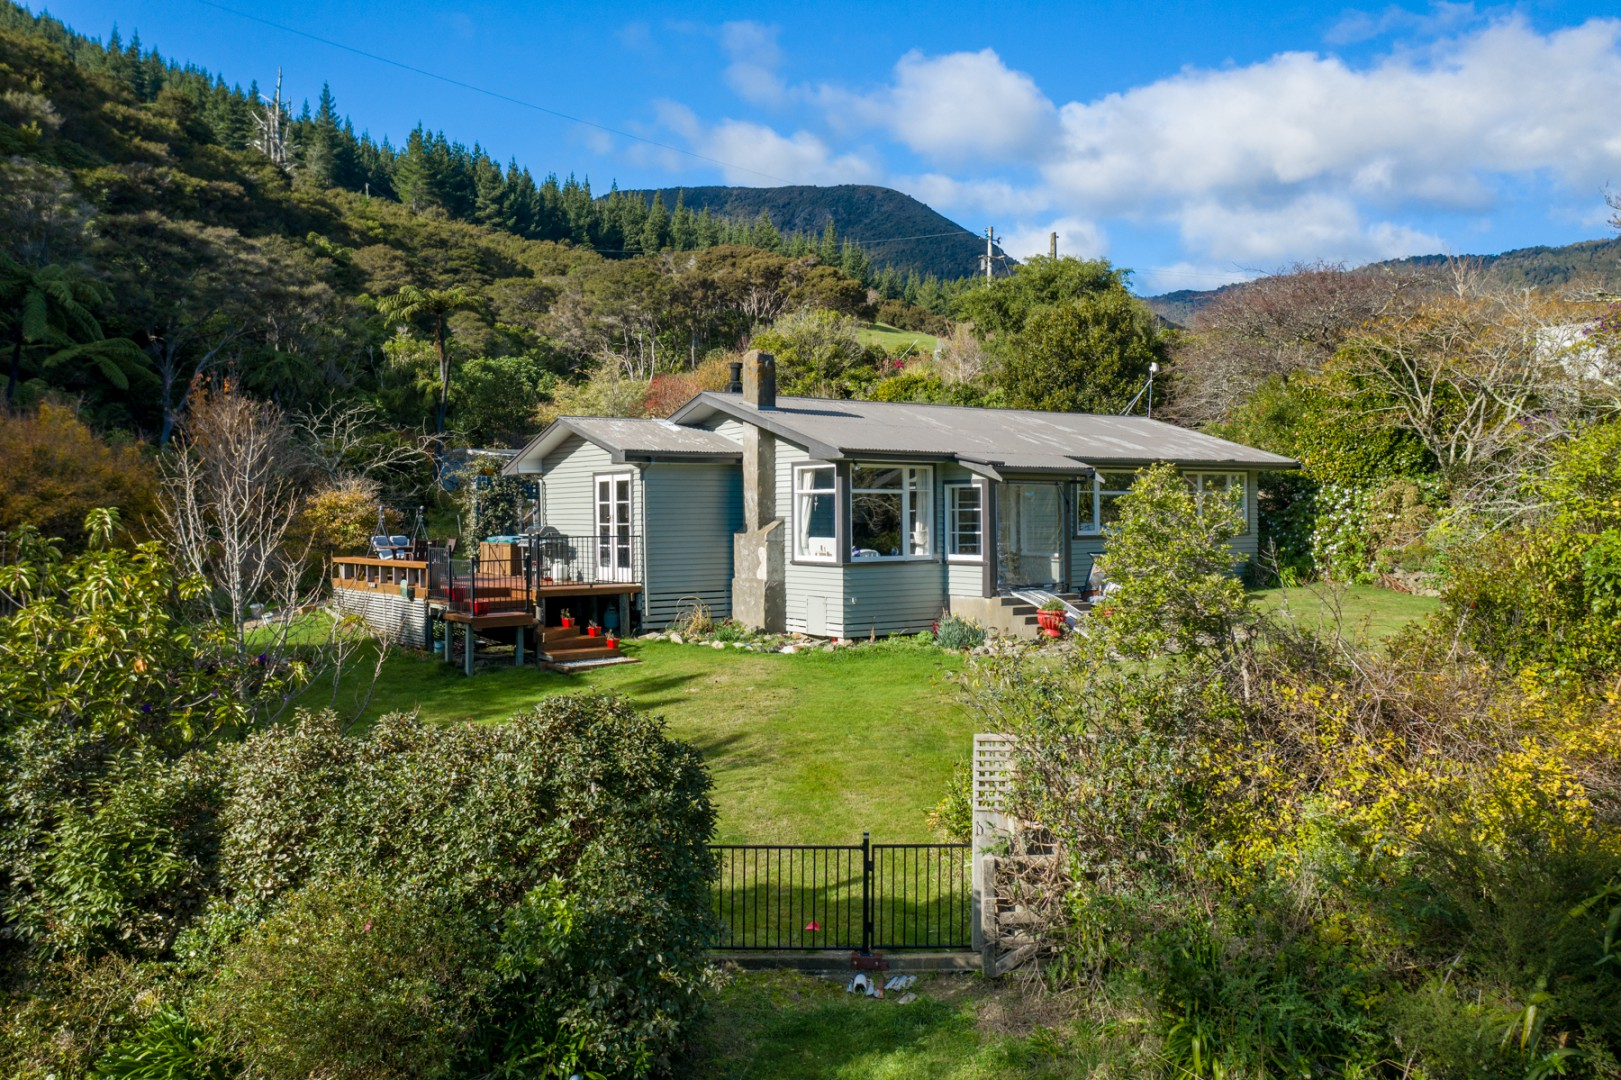 1100 Elie Bay Road - Crail Bay, Marlborough Sounds #1 -- listing/11168/m-v16.jpeg